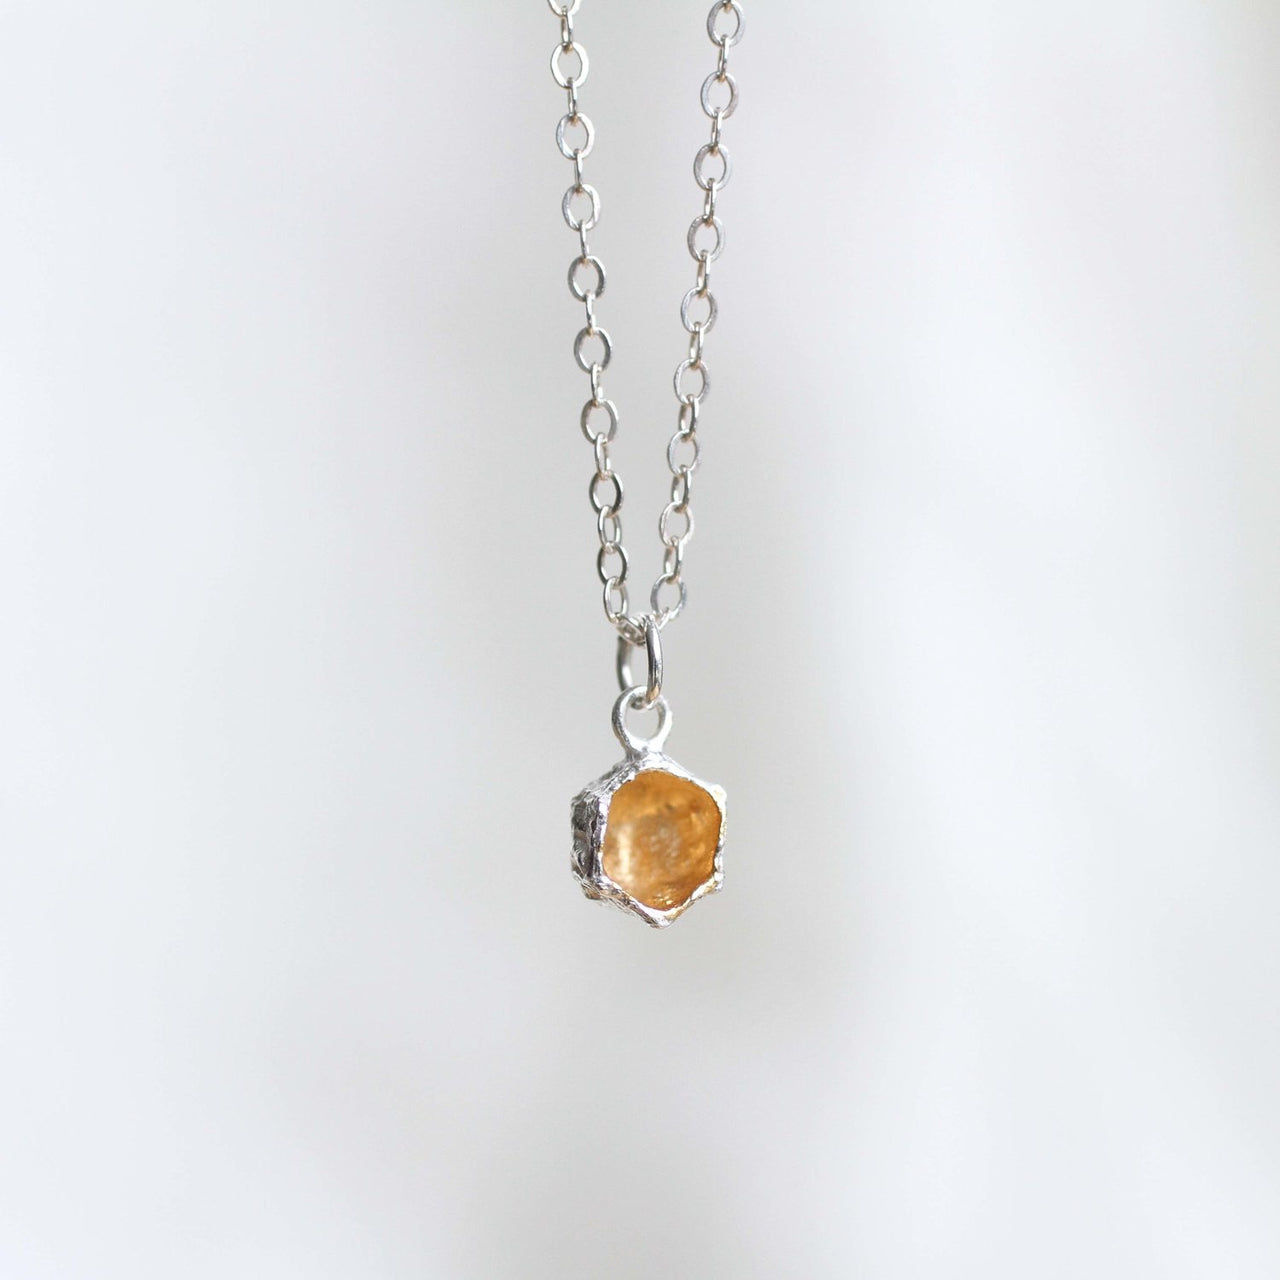 Honeycomb Prism Necklace . 14 kt Gold and Sterling